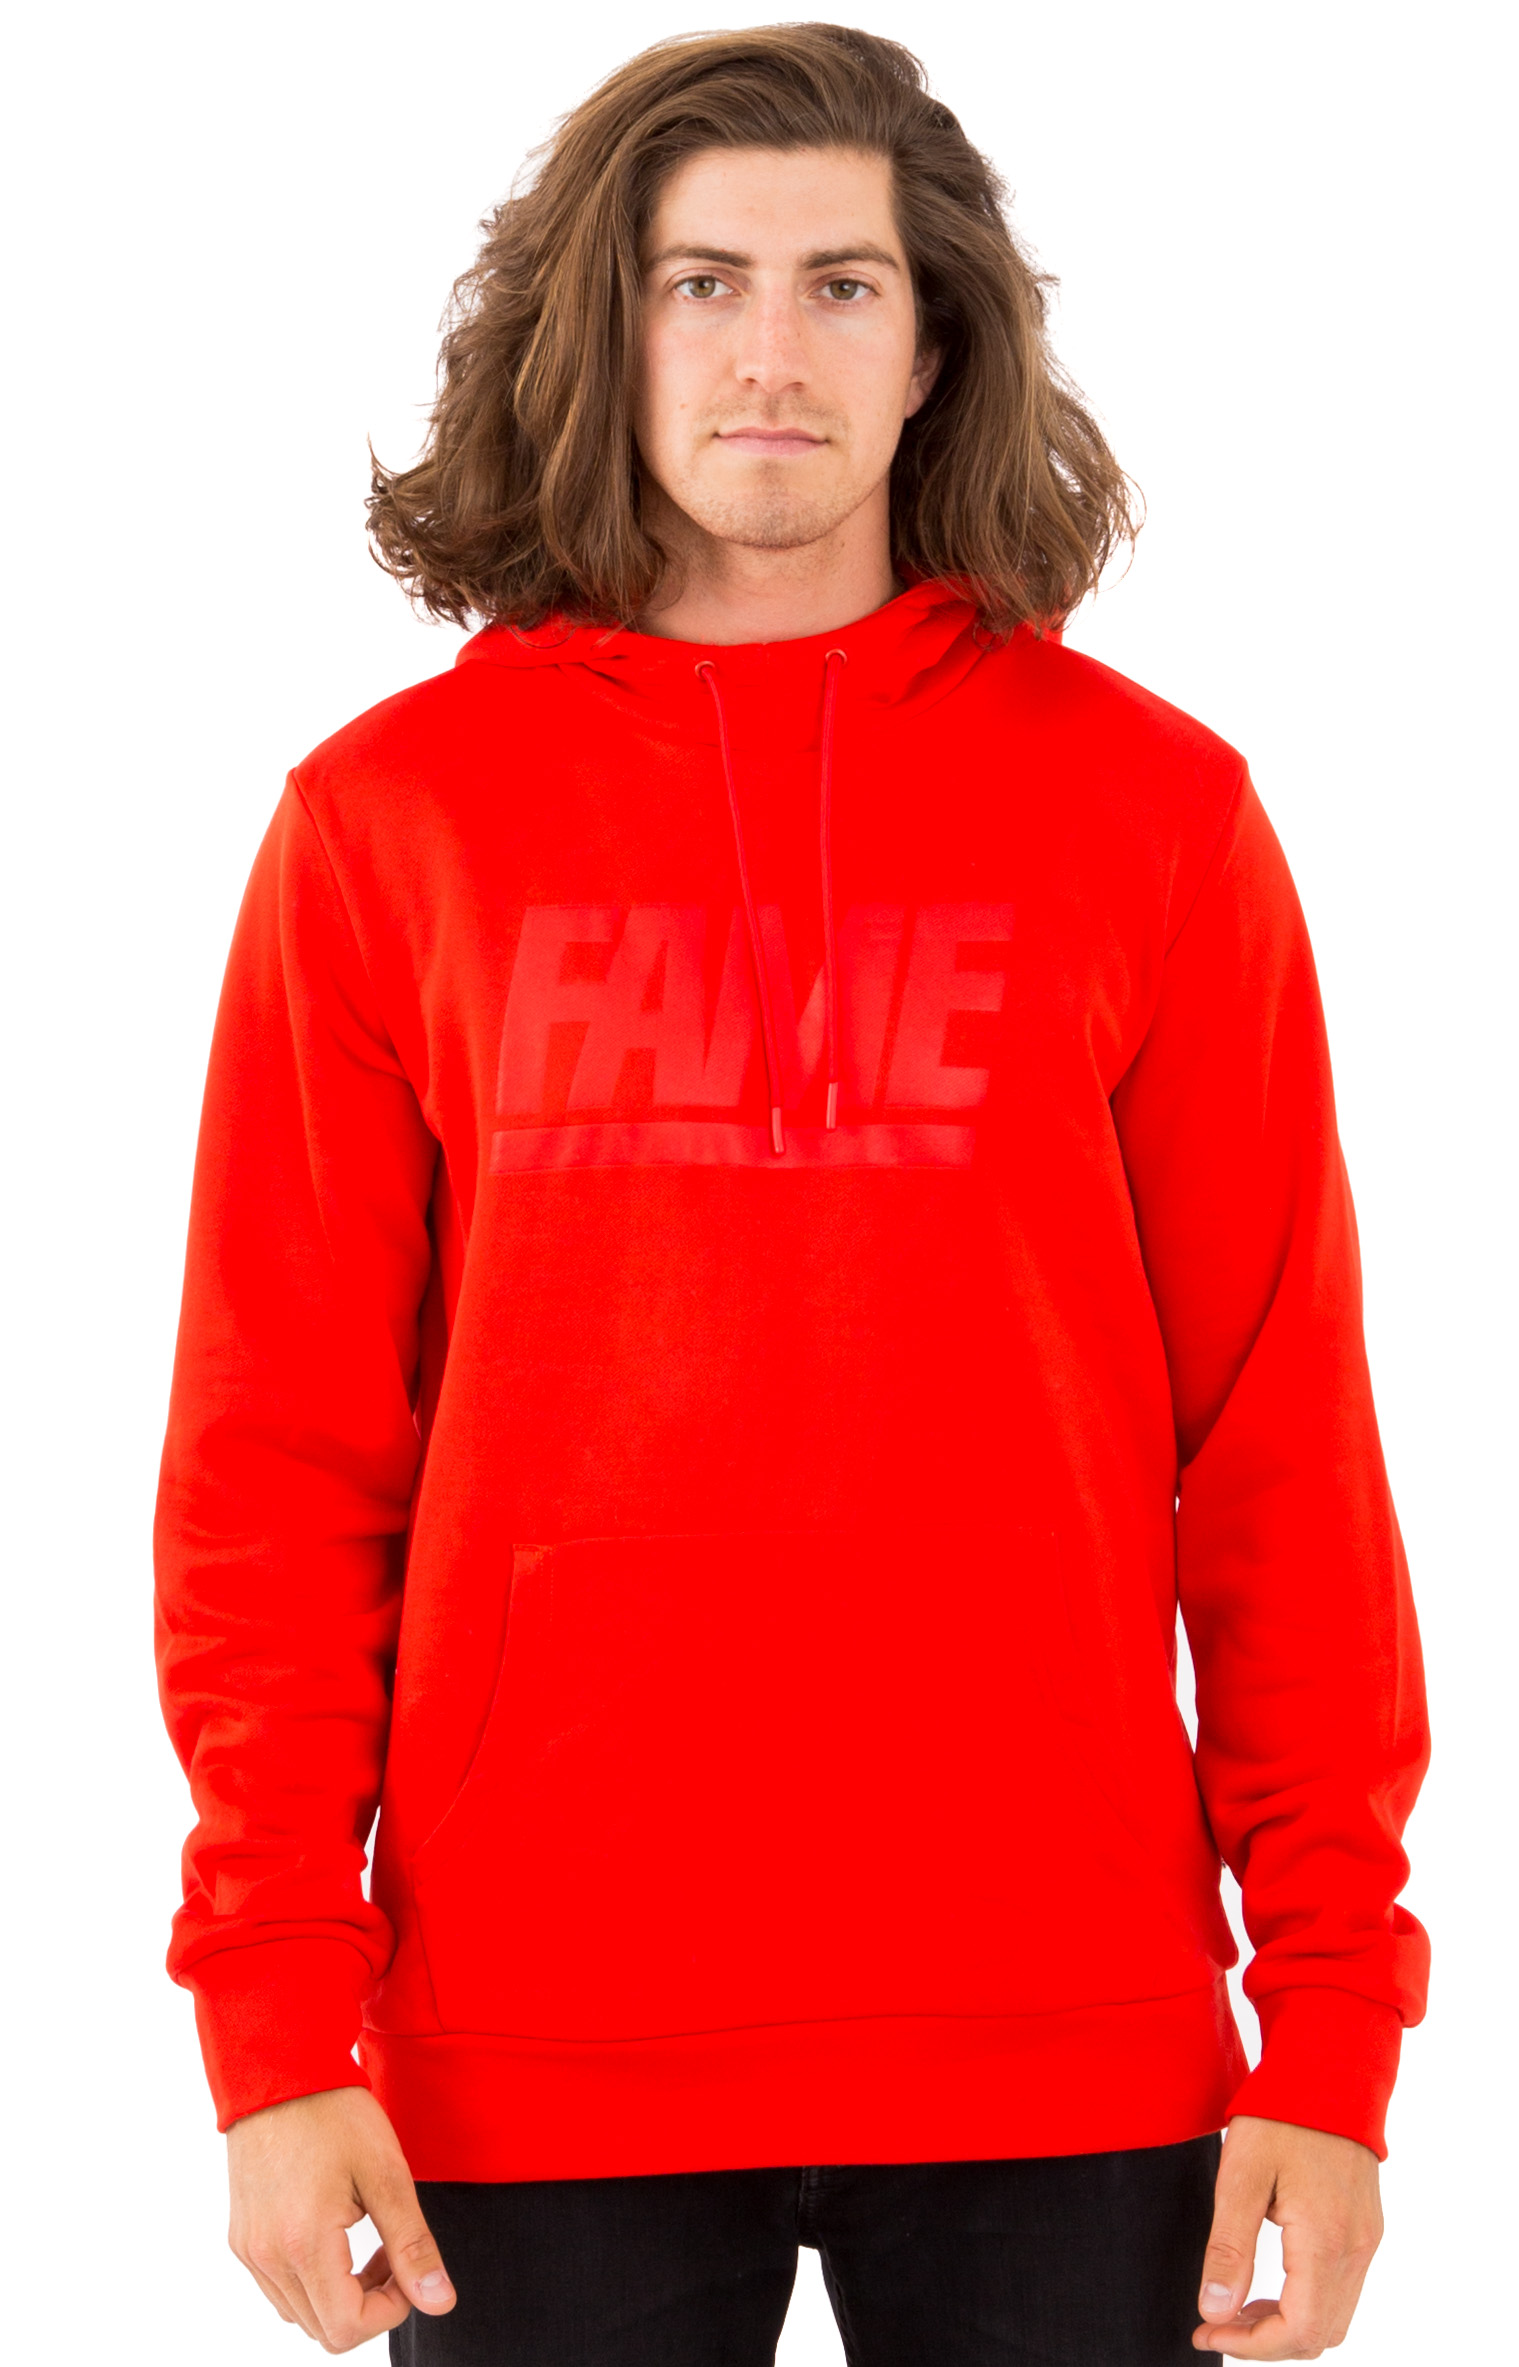 Fame Block Press Pullover Hoodie - Red